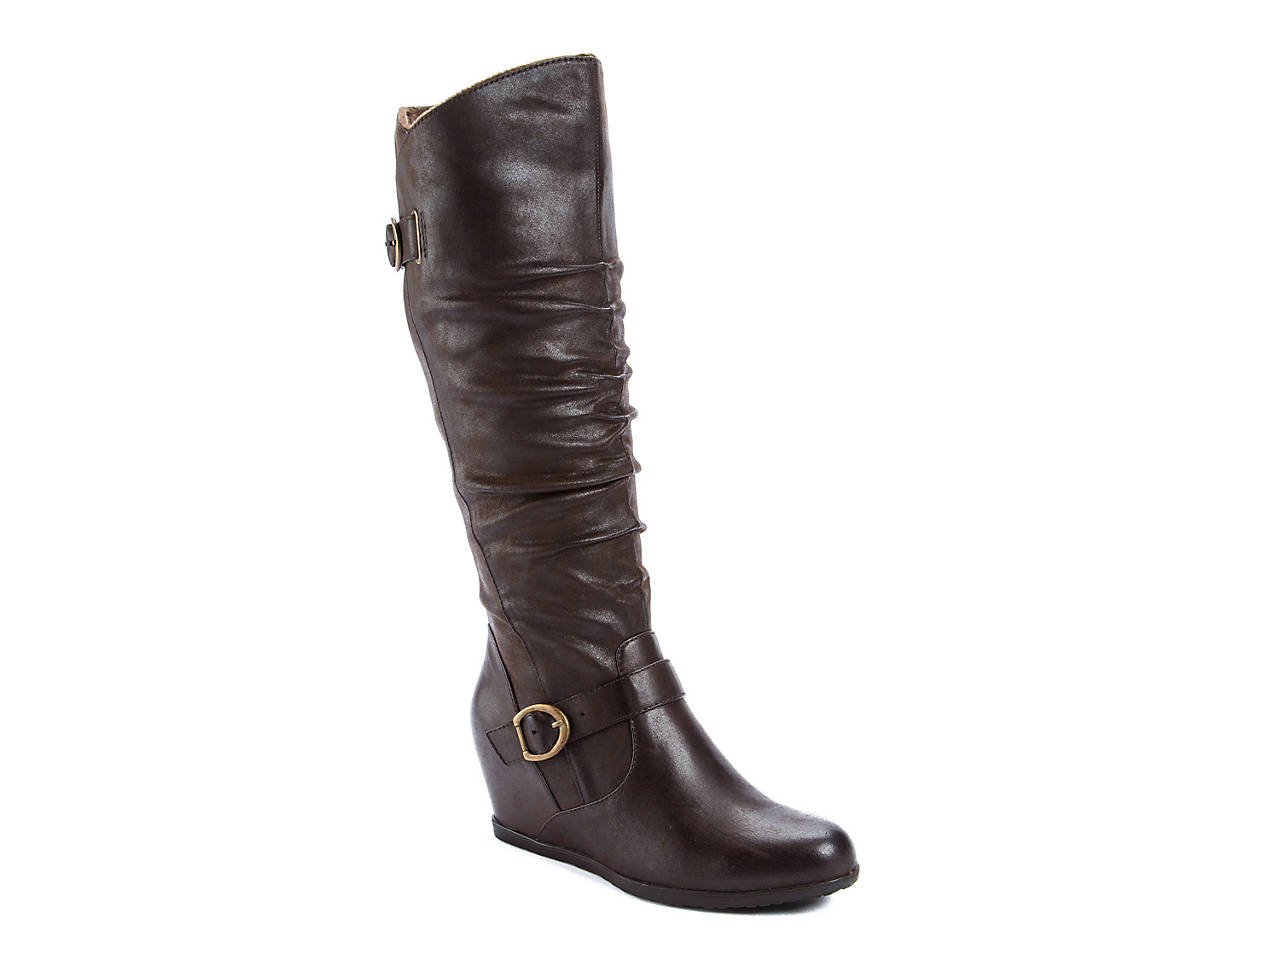 d23334716d5c2 Bare Traps Tender Wide Calf Wedge Boot Women's Shoes | DSW